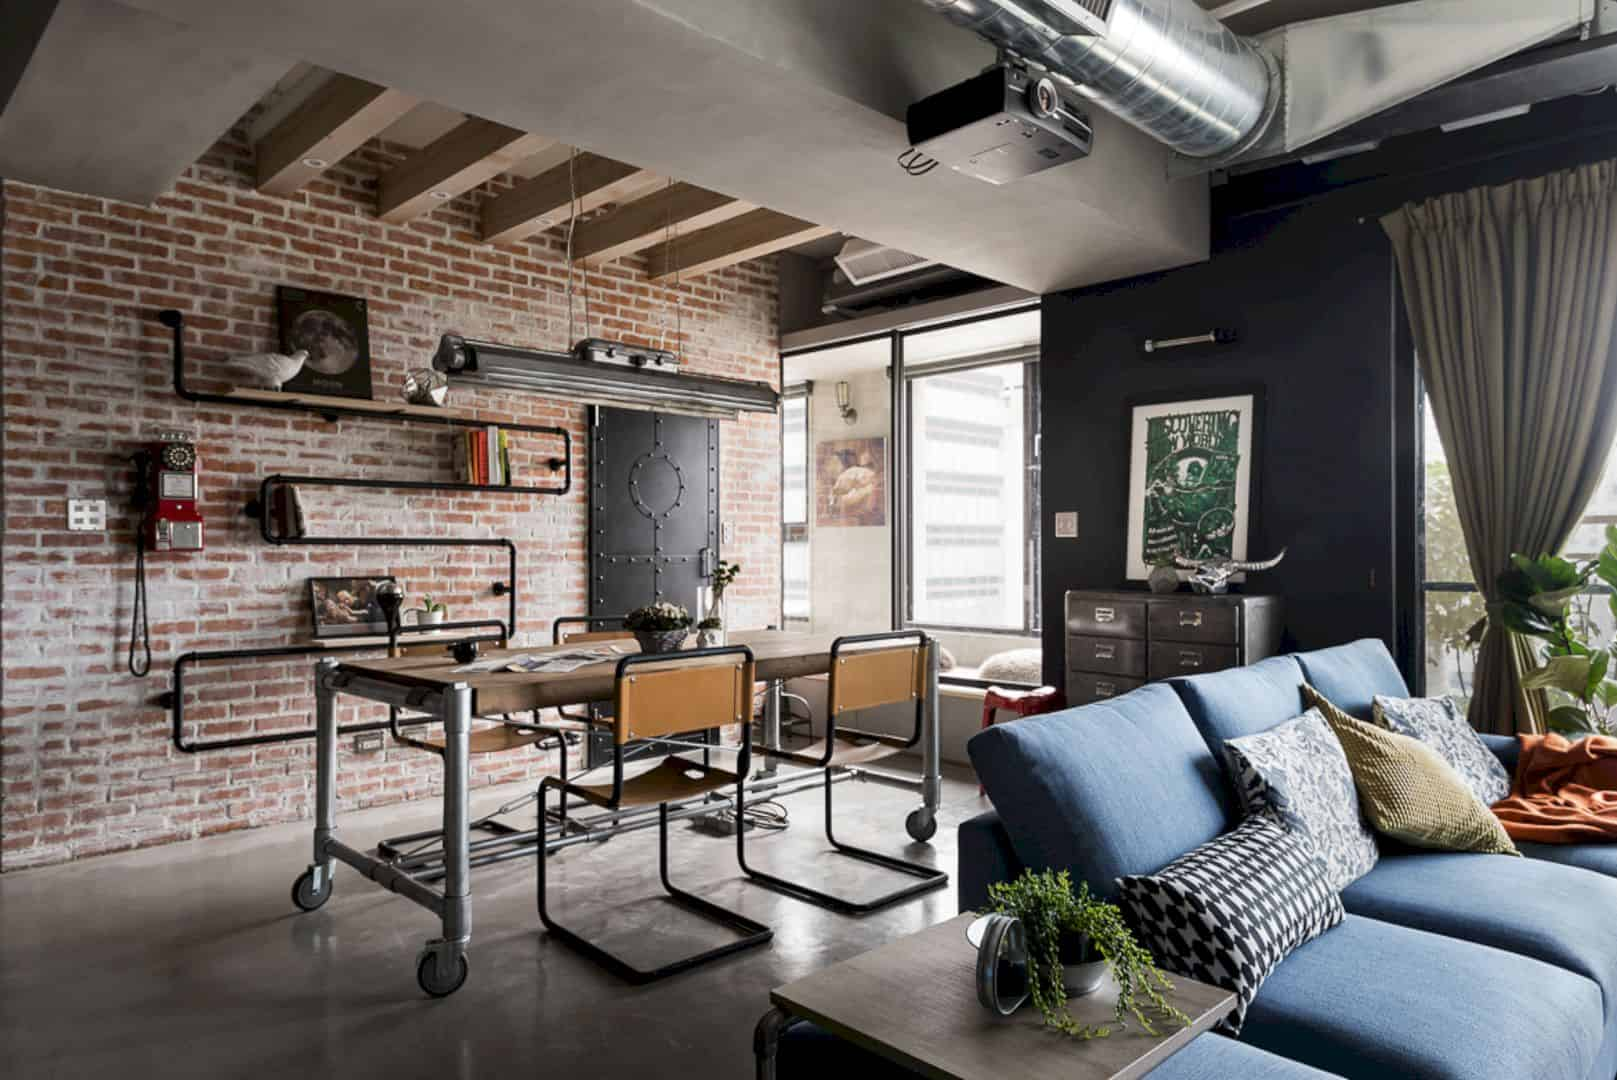 Hao design uses some different materials to create the vintage interior in recall casa the new wall has been changed into a rough and original concrete